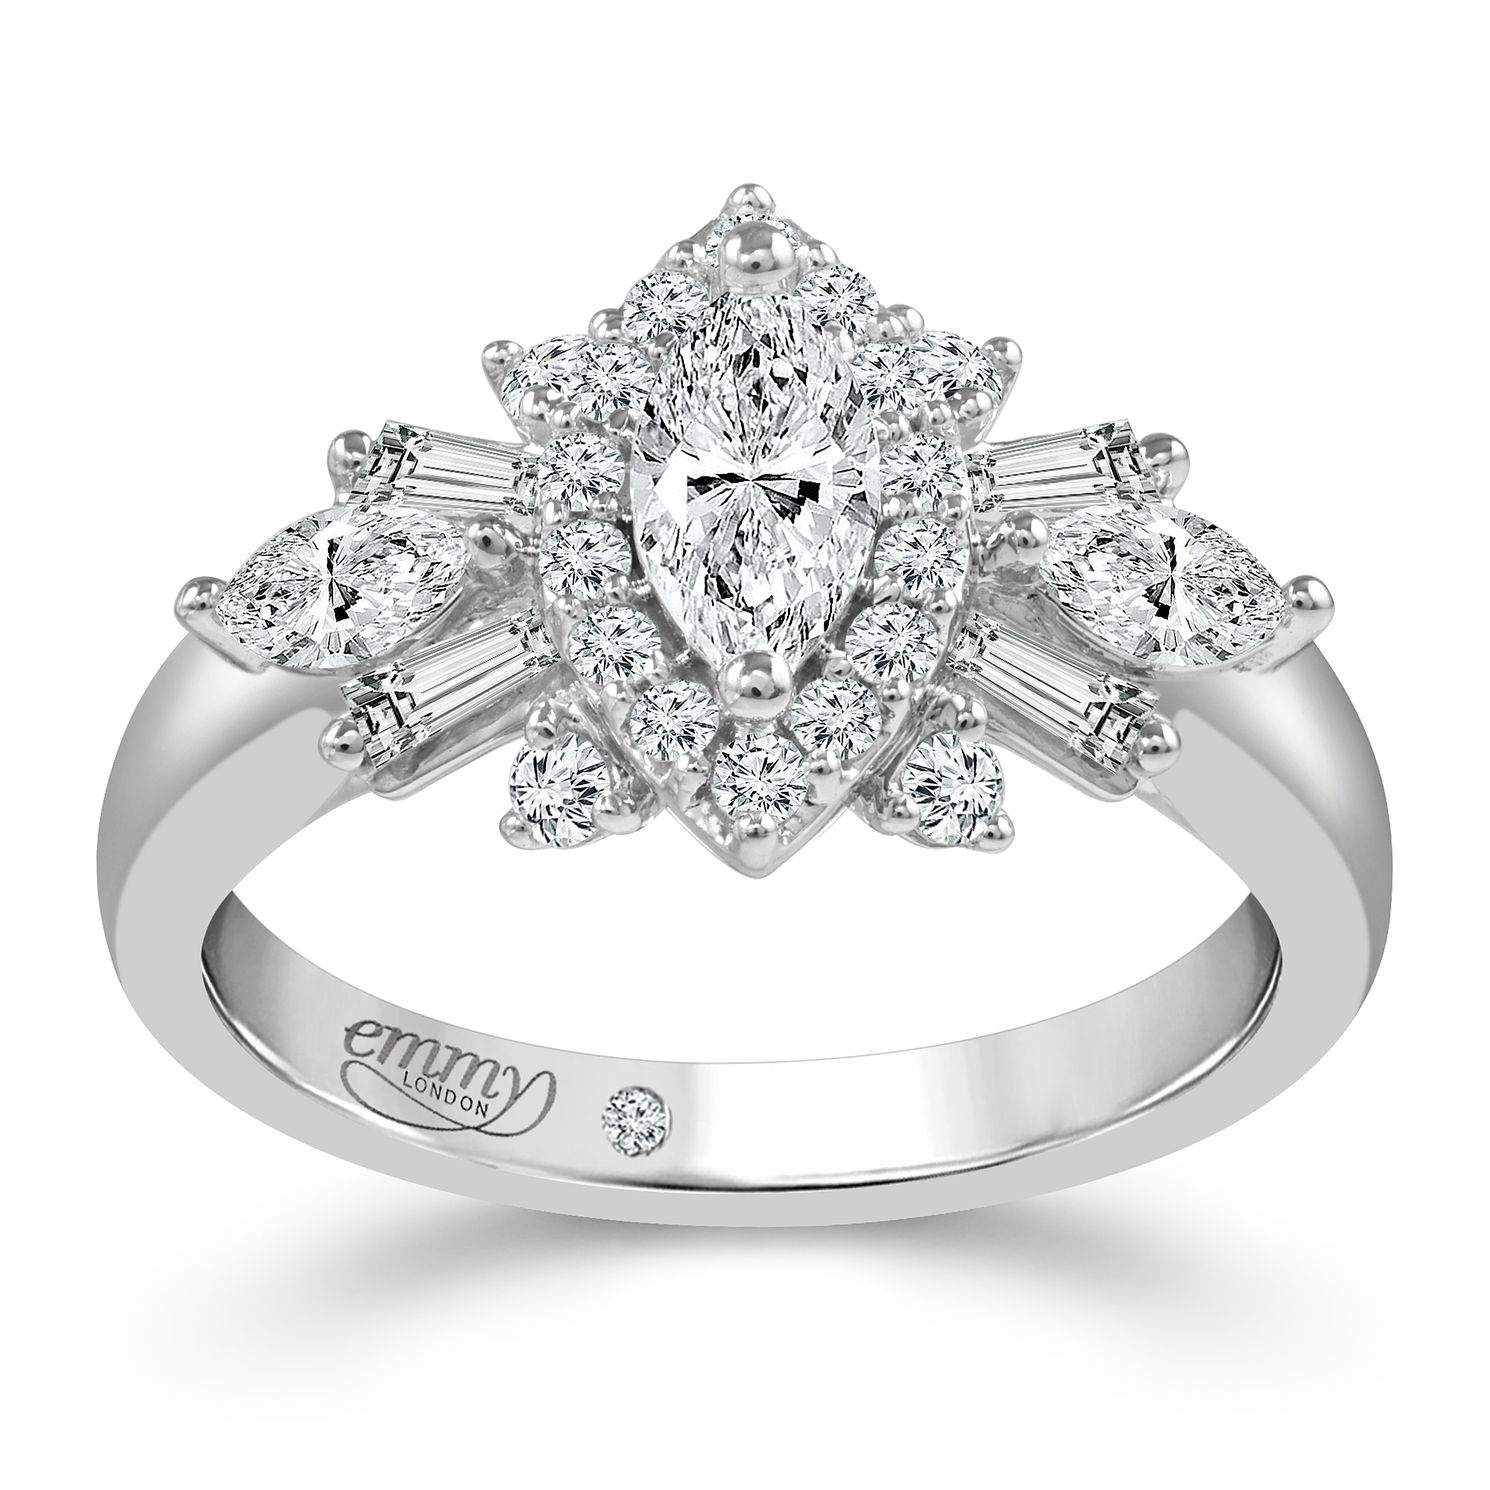 Emmy London Platinum 1 Carat Diamond Ring - Product number 6262597